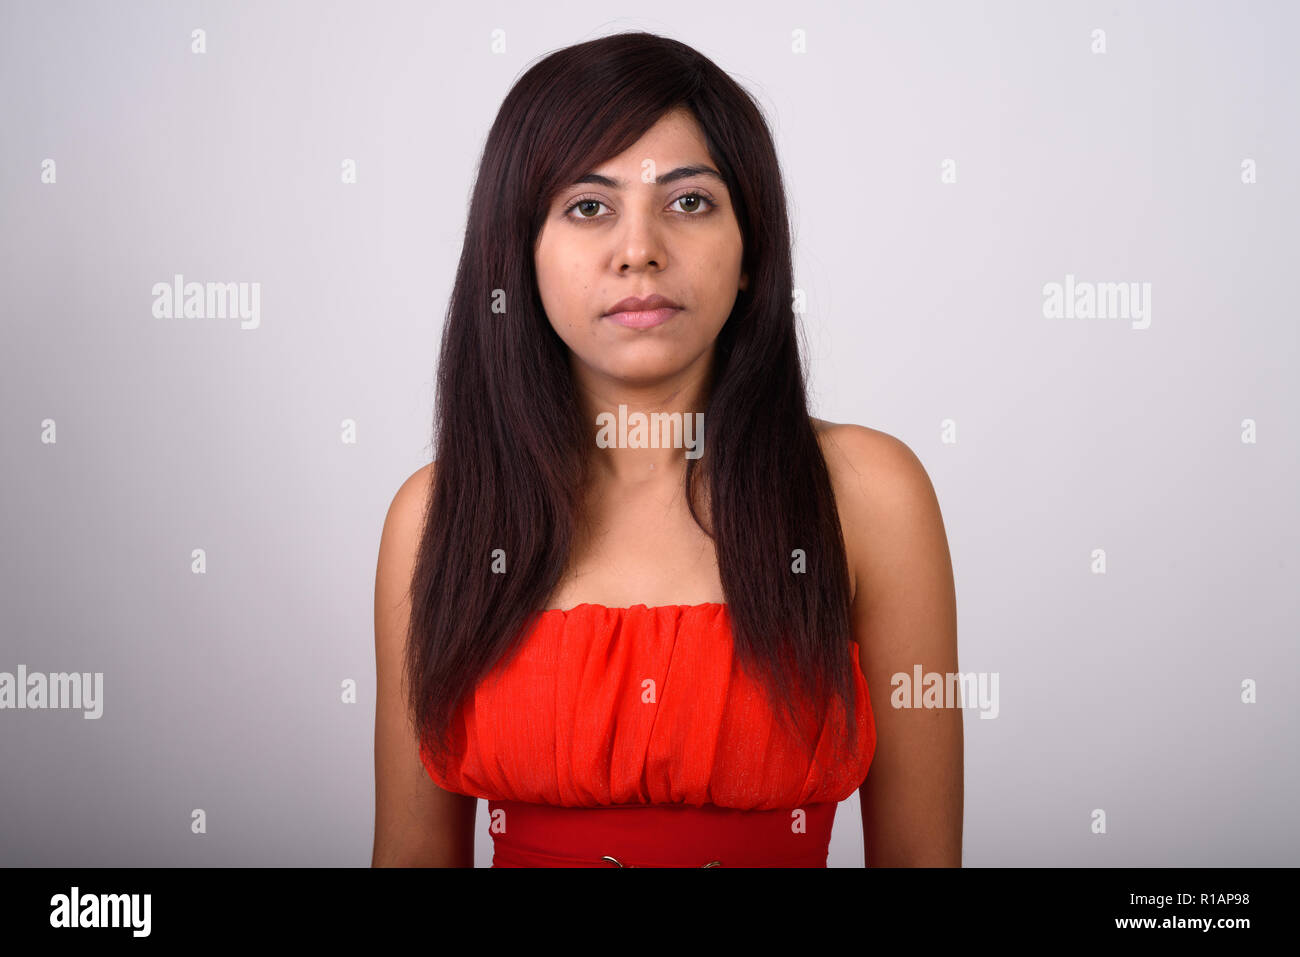 2887df027f Close up of young Persian woman wearing red dress against gray b ...